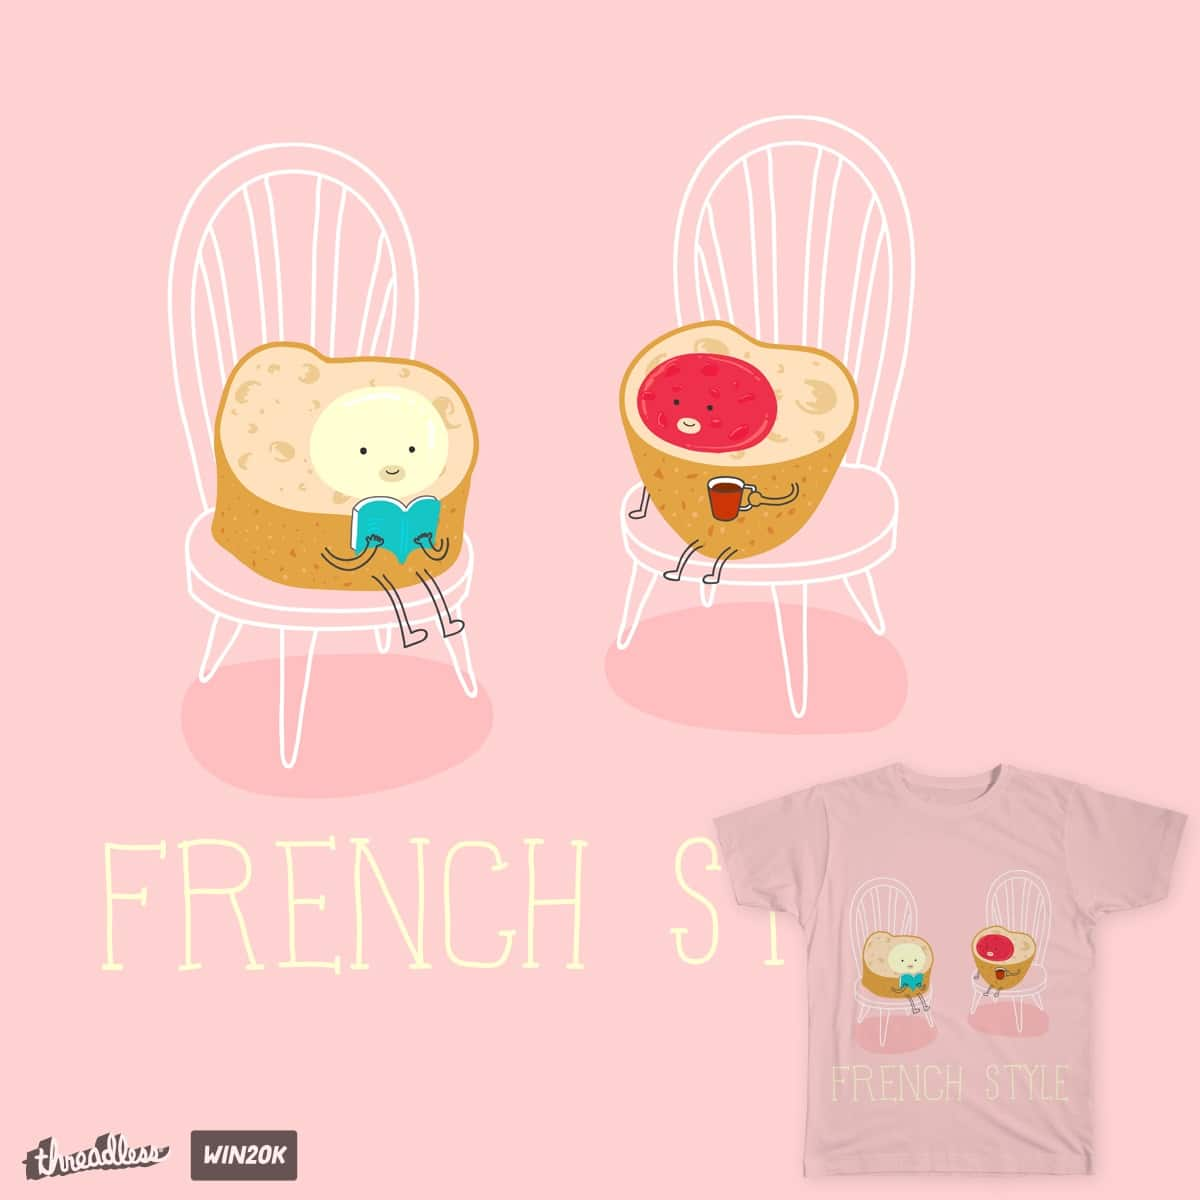 Fernch style by souriezamelie on Threadless